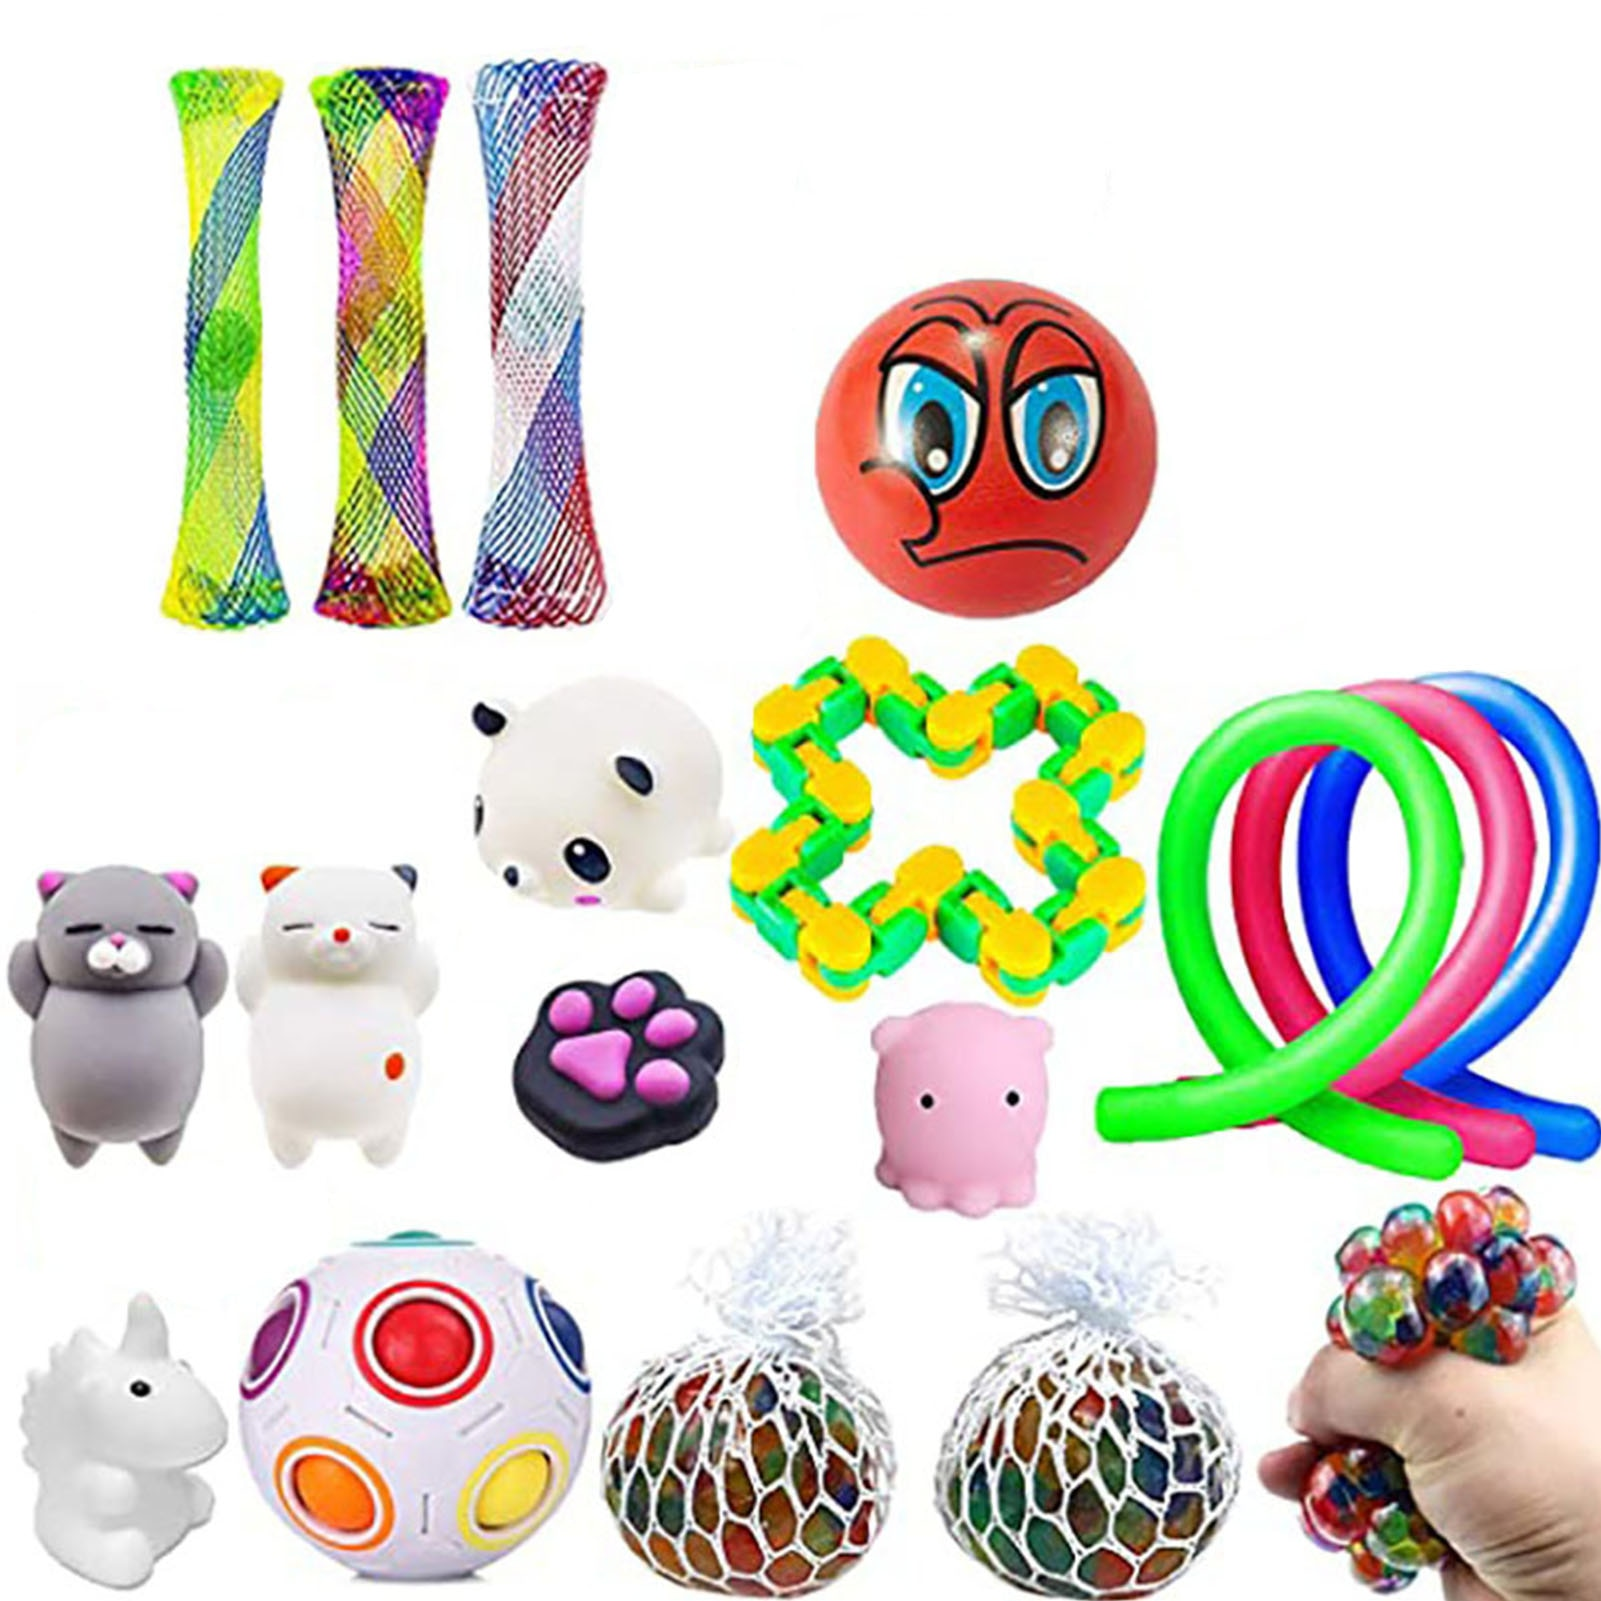 Fidget Toys Pack Sensory Fidget Toy Set Stress Relief Squeeze Toys For Kids Adults Stretch And Squeeze Toys At Will Anti-stress enlarge